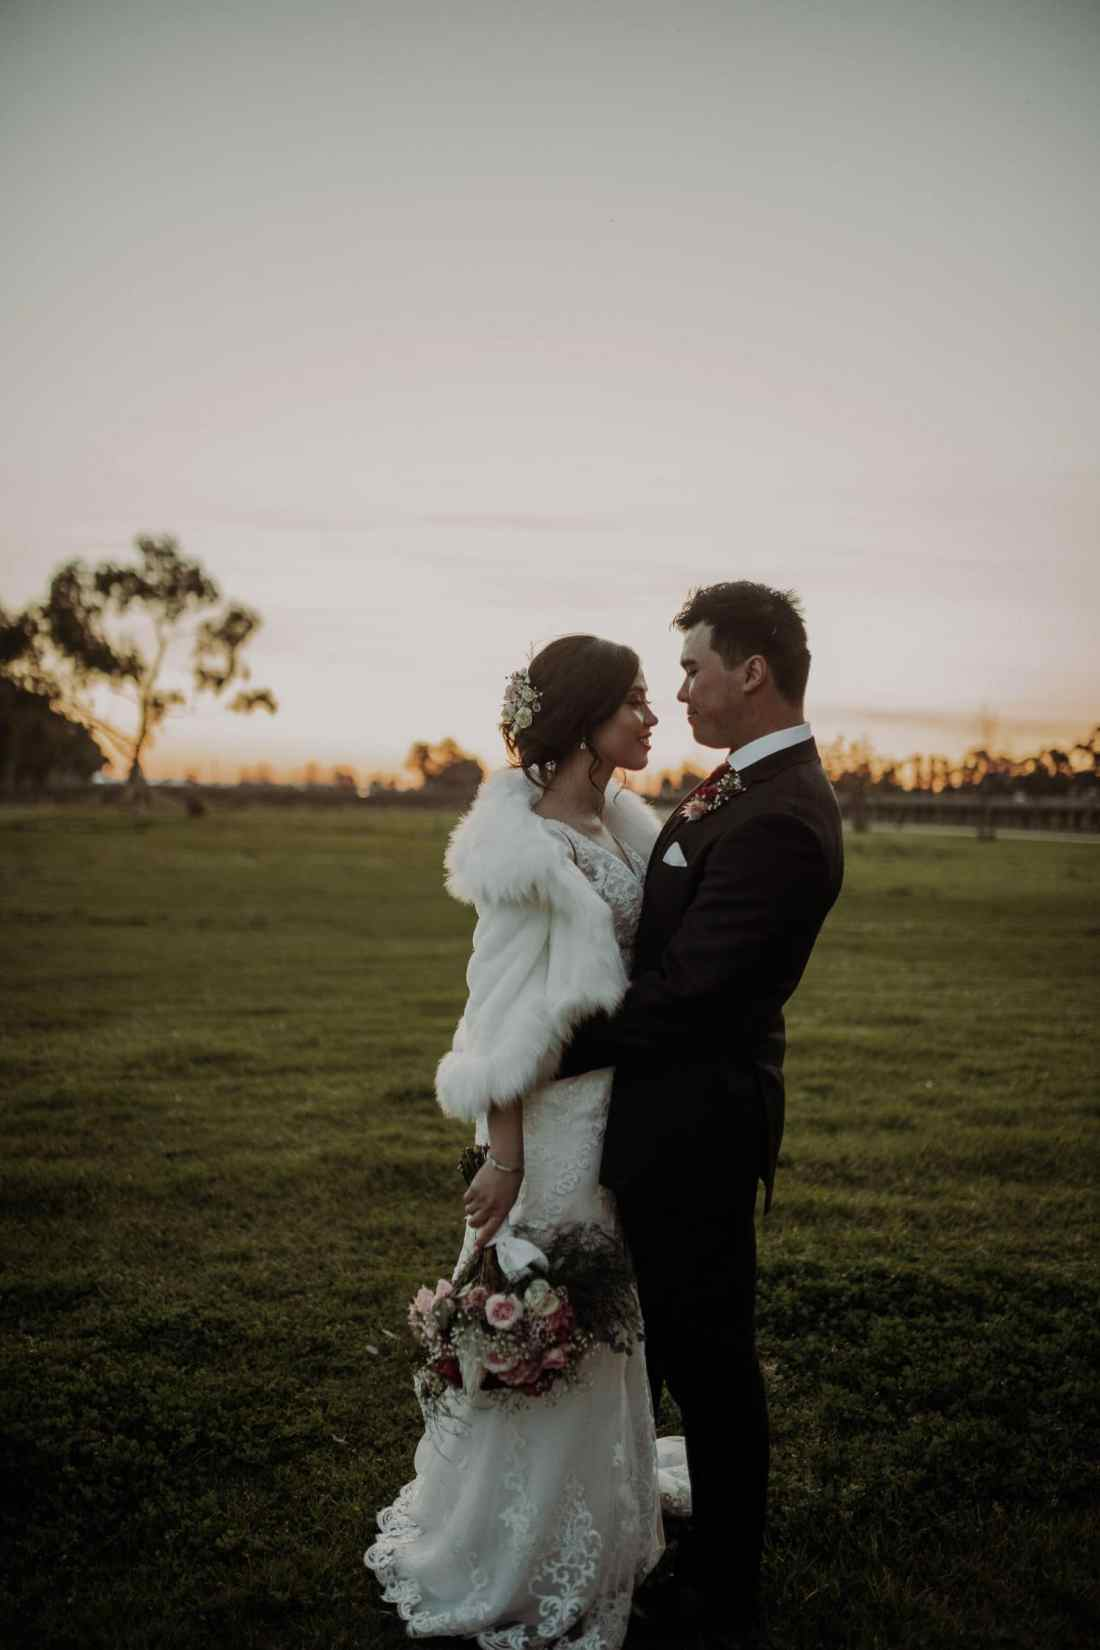 Ebony-Blush-Photography-Perth-Wedding-Photographer-Photography-Film-Sandalford-Winery-Como-Treasury-Wedding-Perth-City-Wedding-Alex-Mel102.jpg